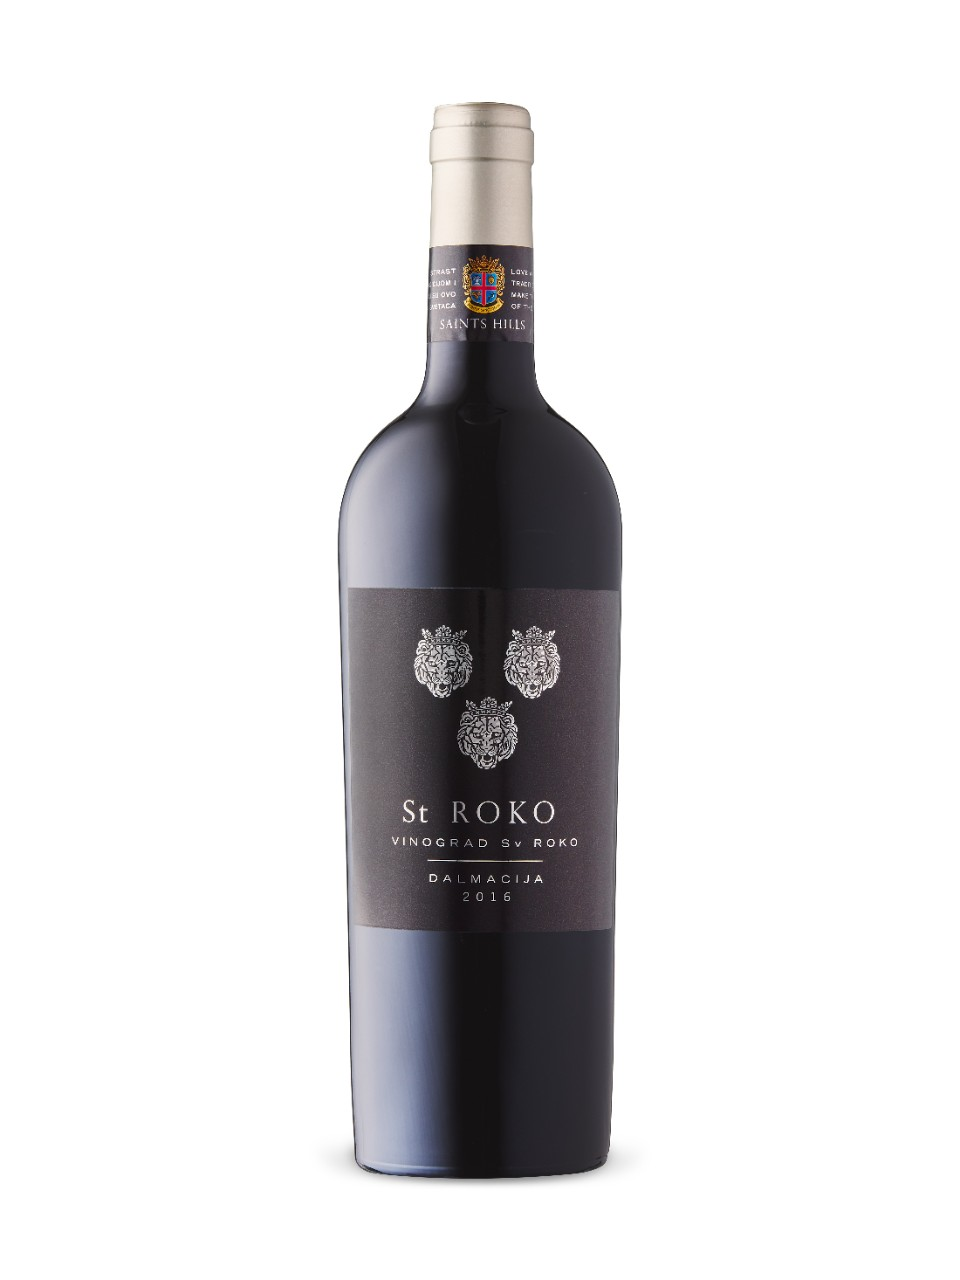 Saints Hills Sv Roko South Dalmatia 2016 from LCBO